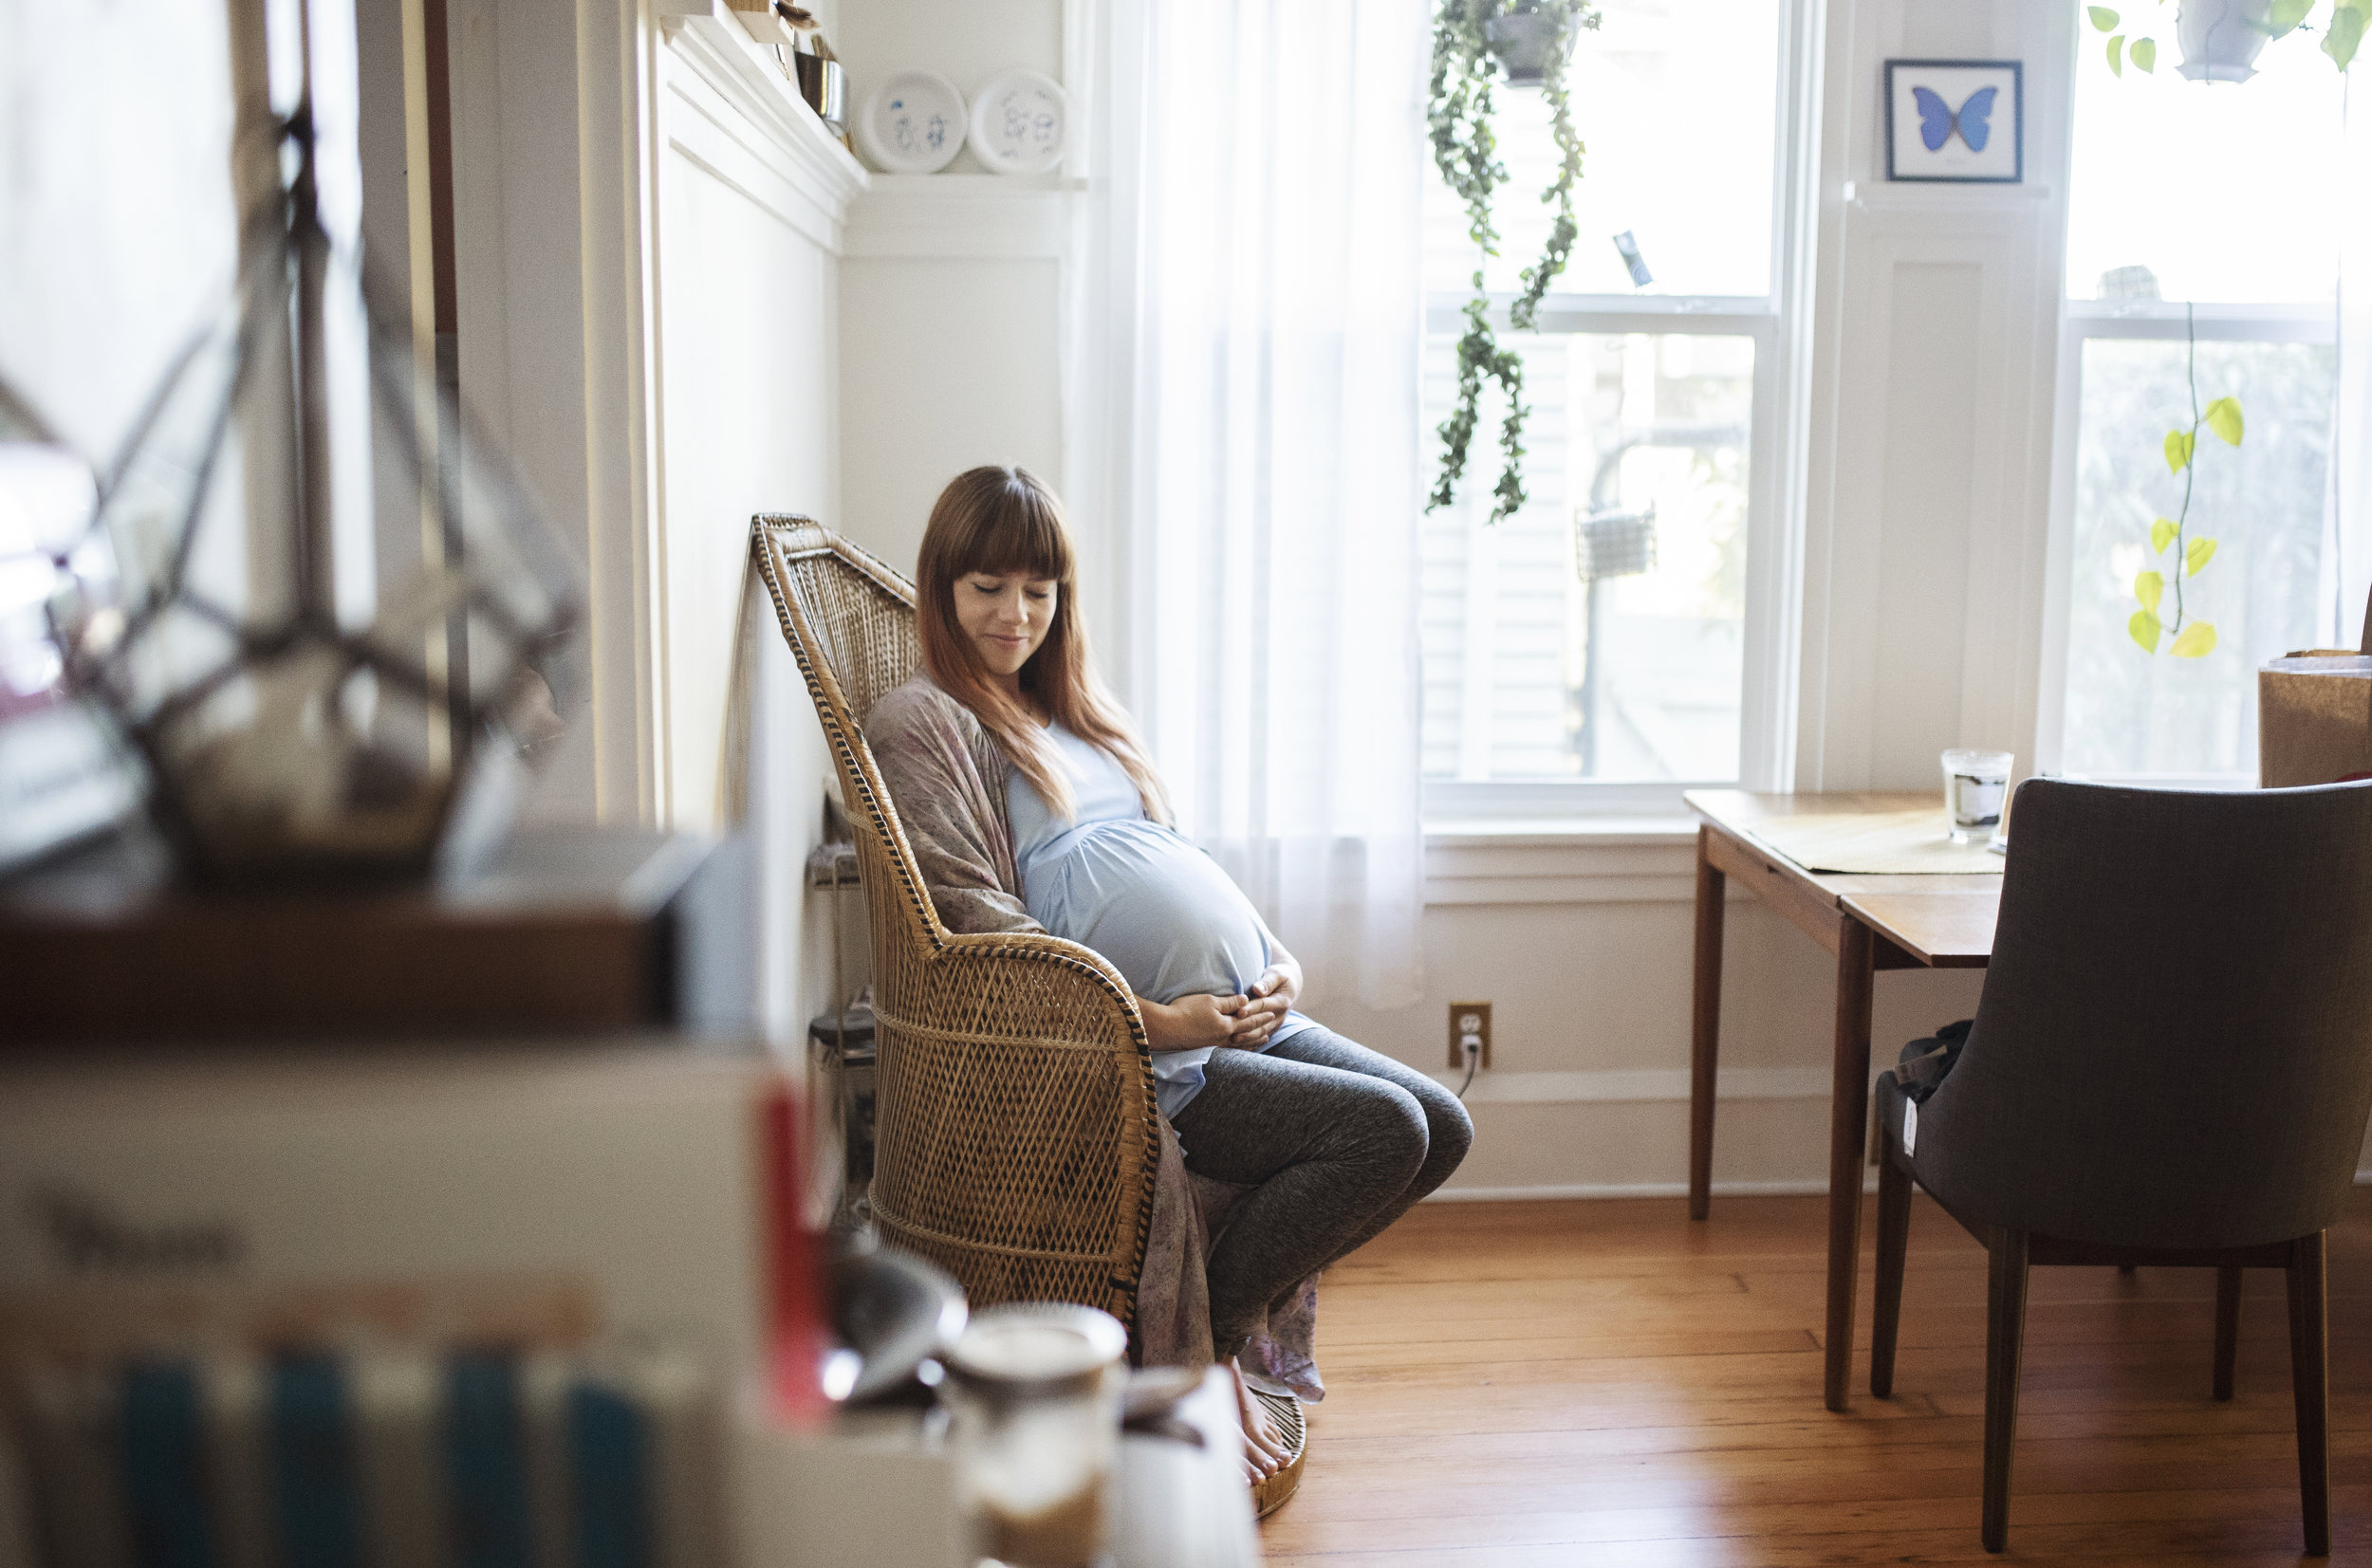 Seattle maternity photographer mom to be sits in a chair at home